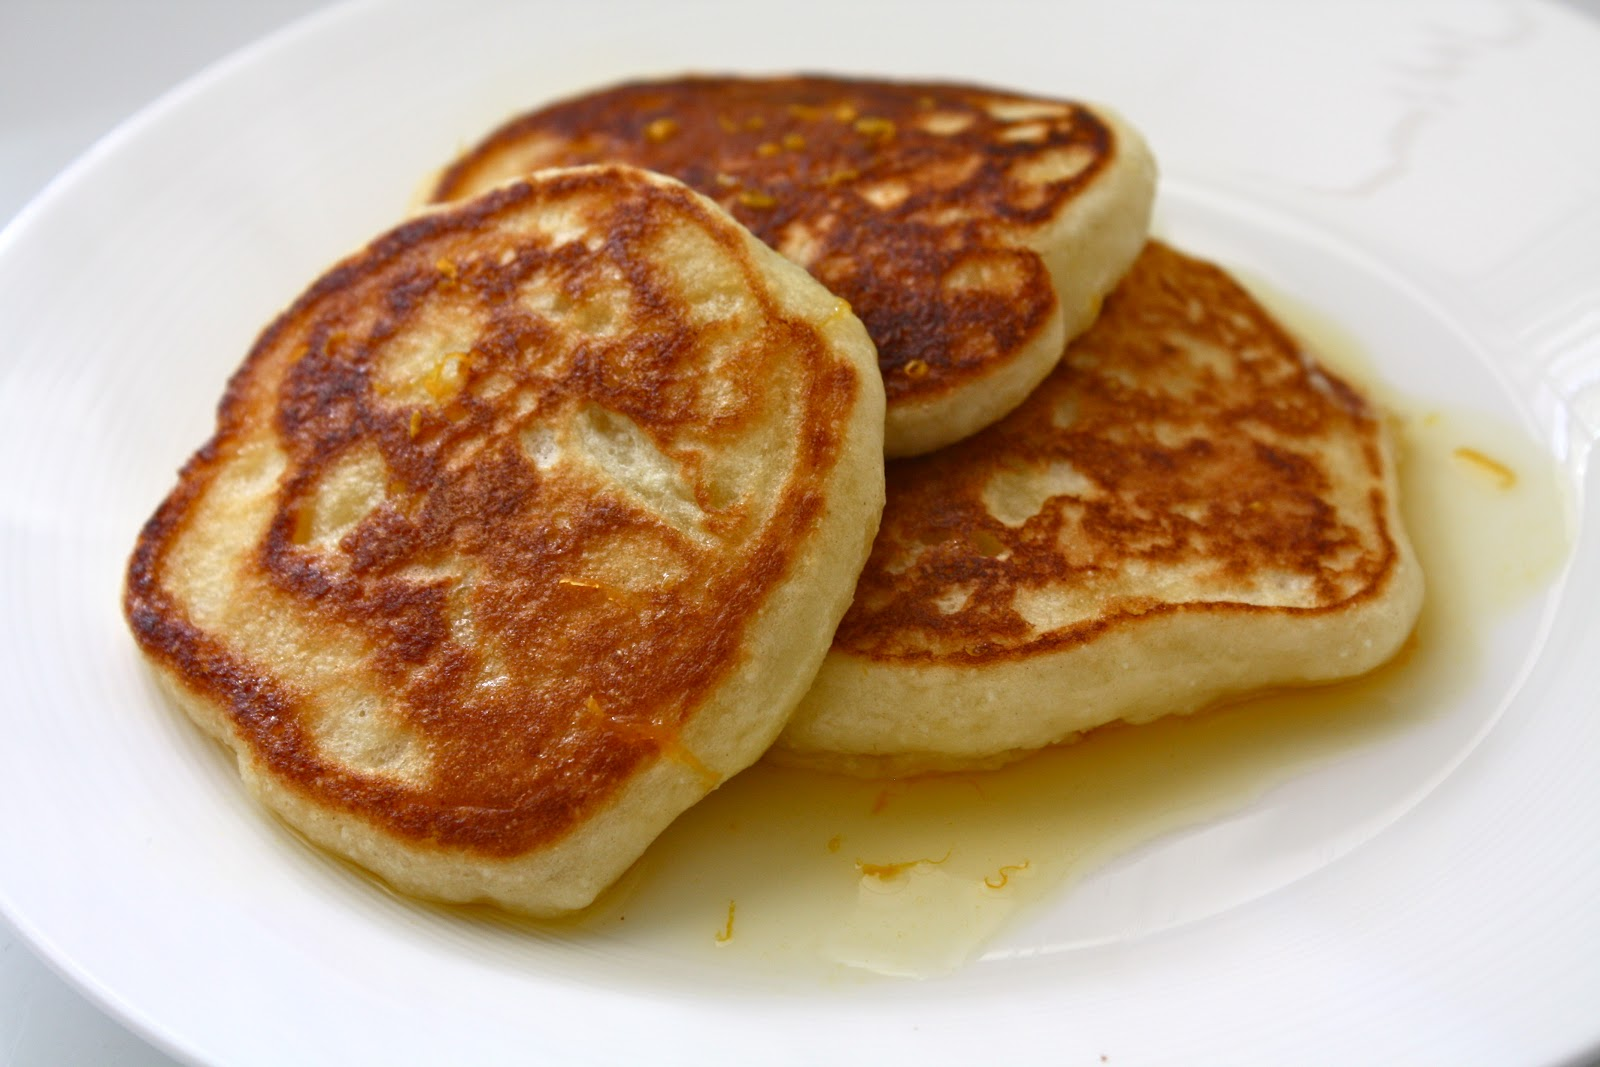 Orange Ricotta Pancakes (From The Breslin, by way of Food & Wine )